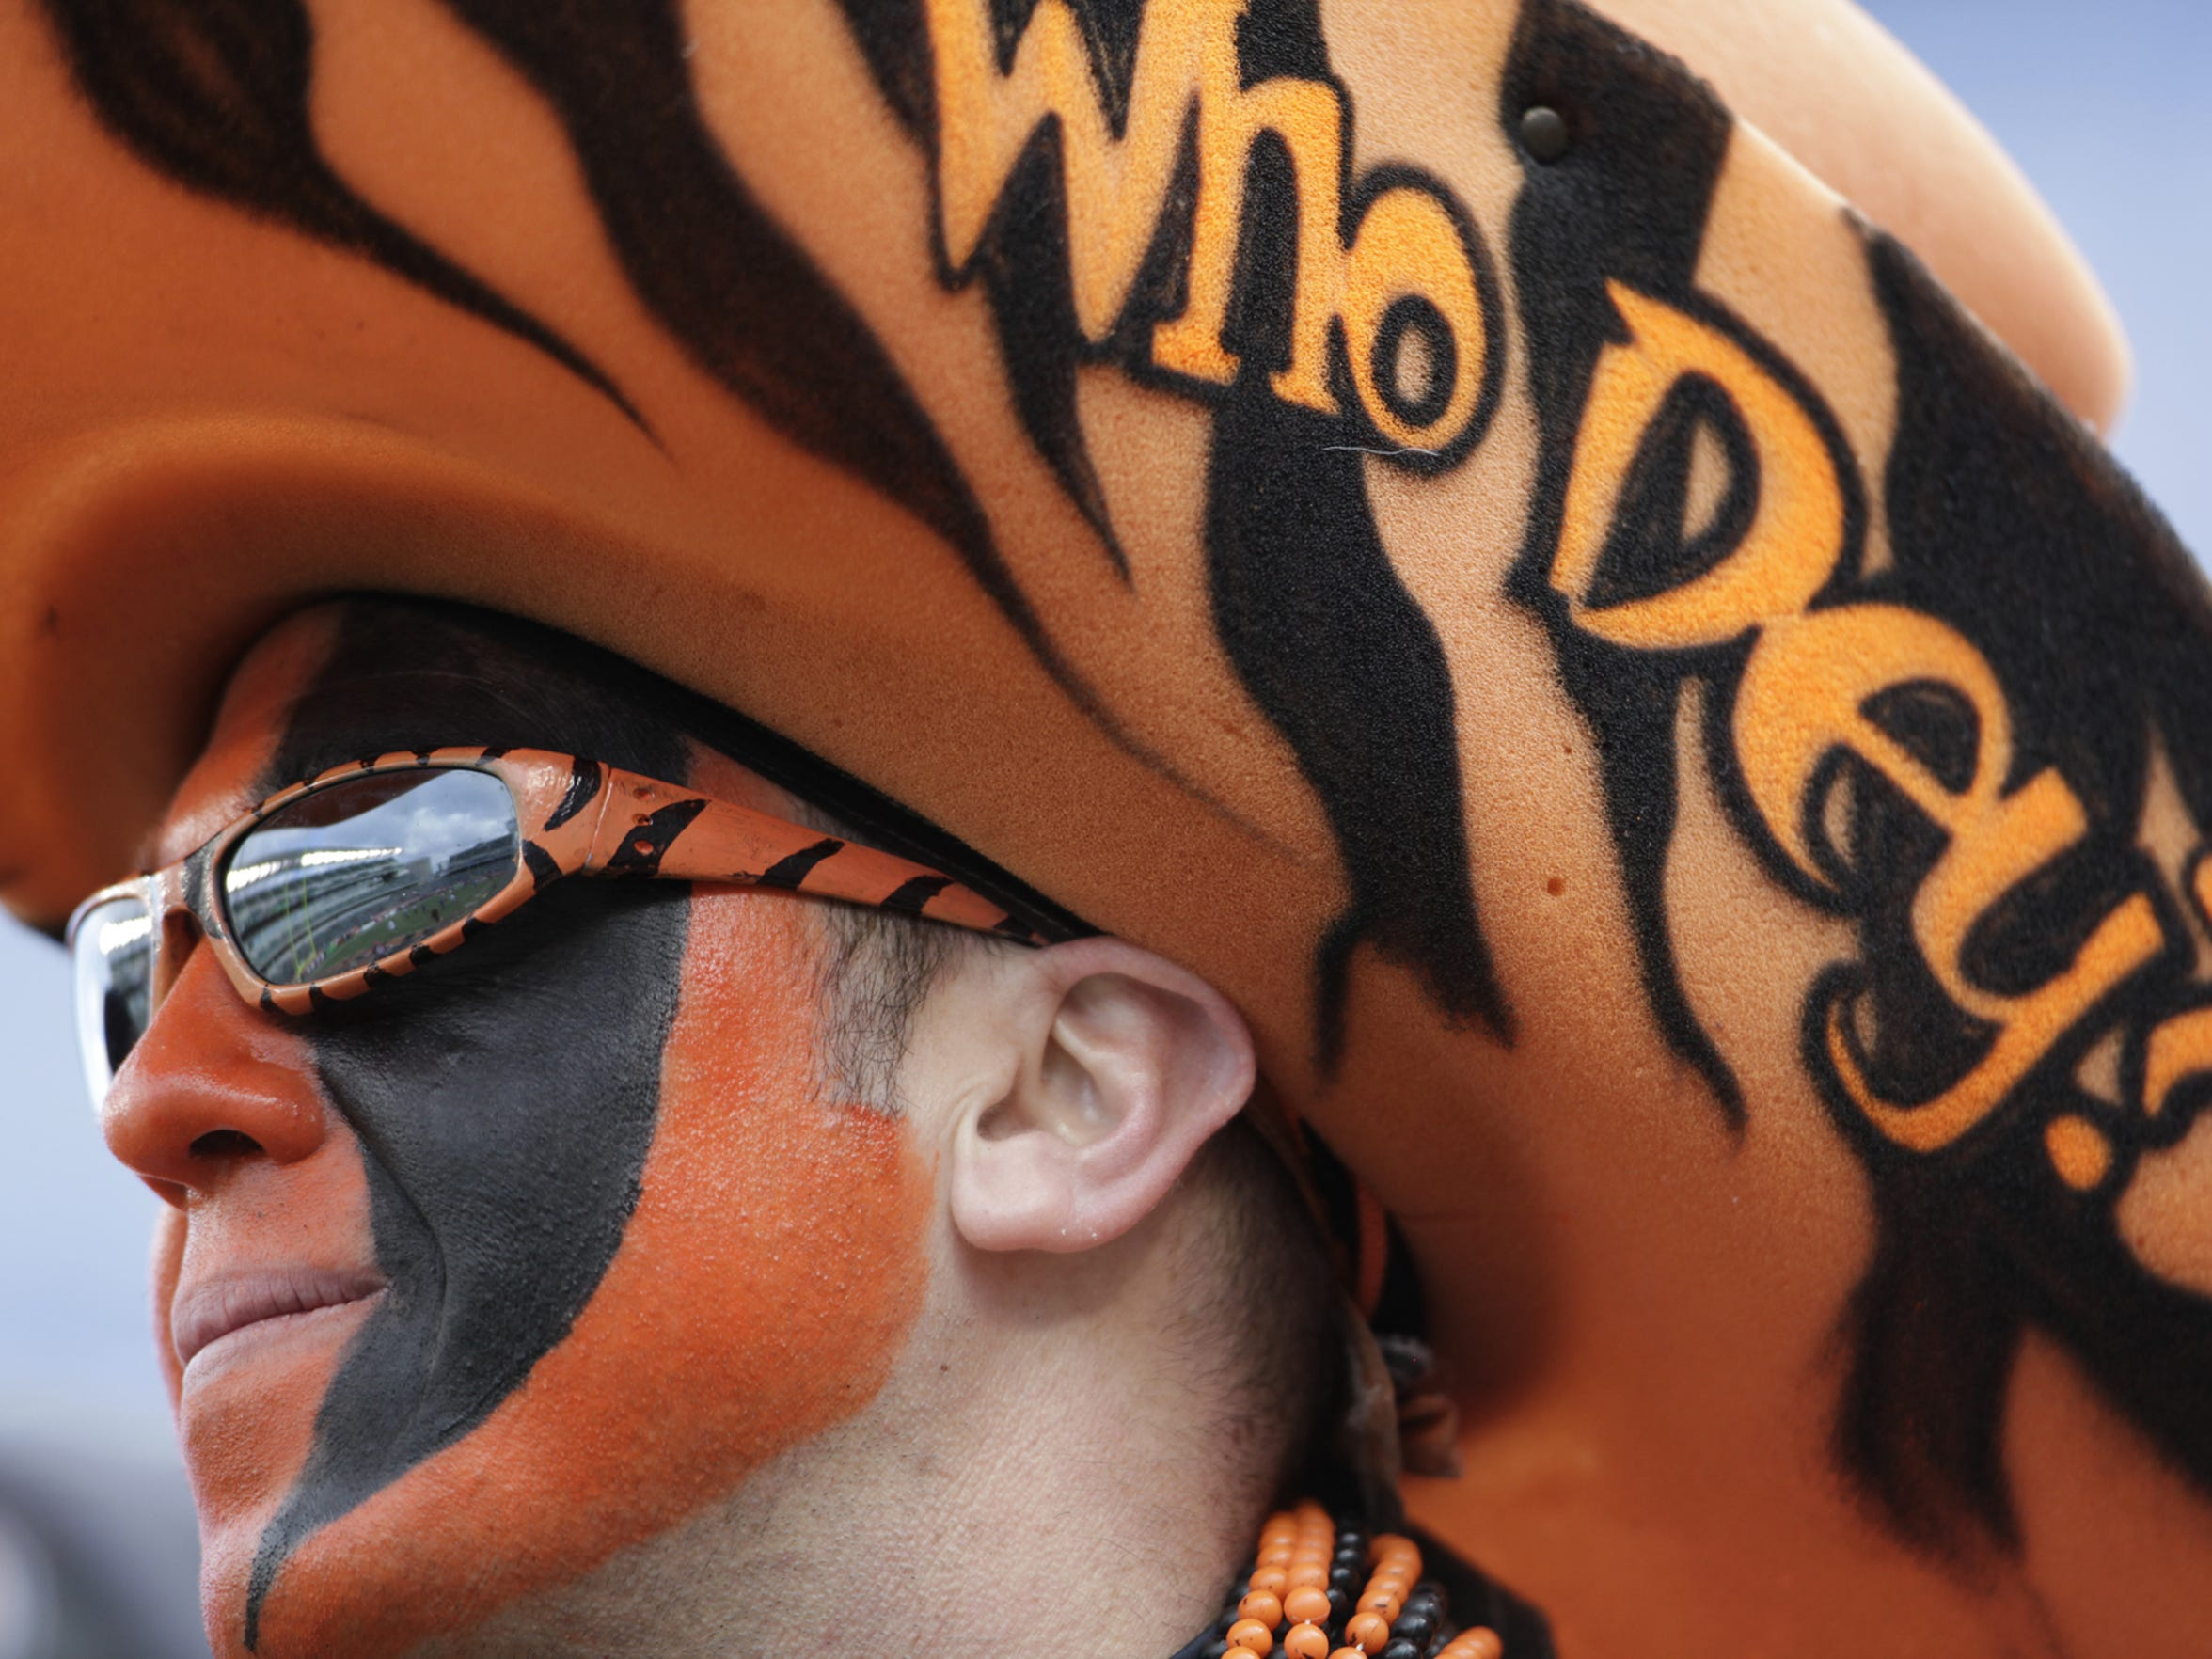 Shaun Moore of Columbus accessorized his giant Who Dey hat with orange and black striped glasses and face paint in 2012.